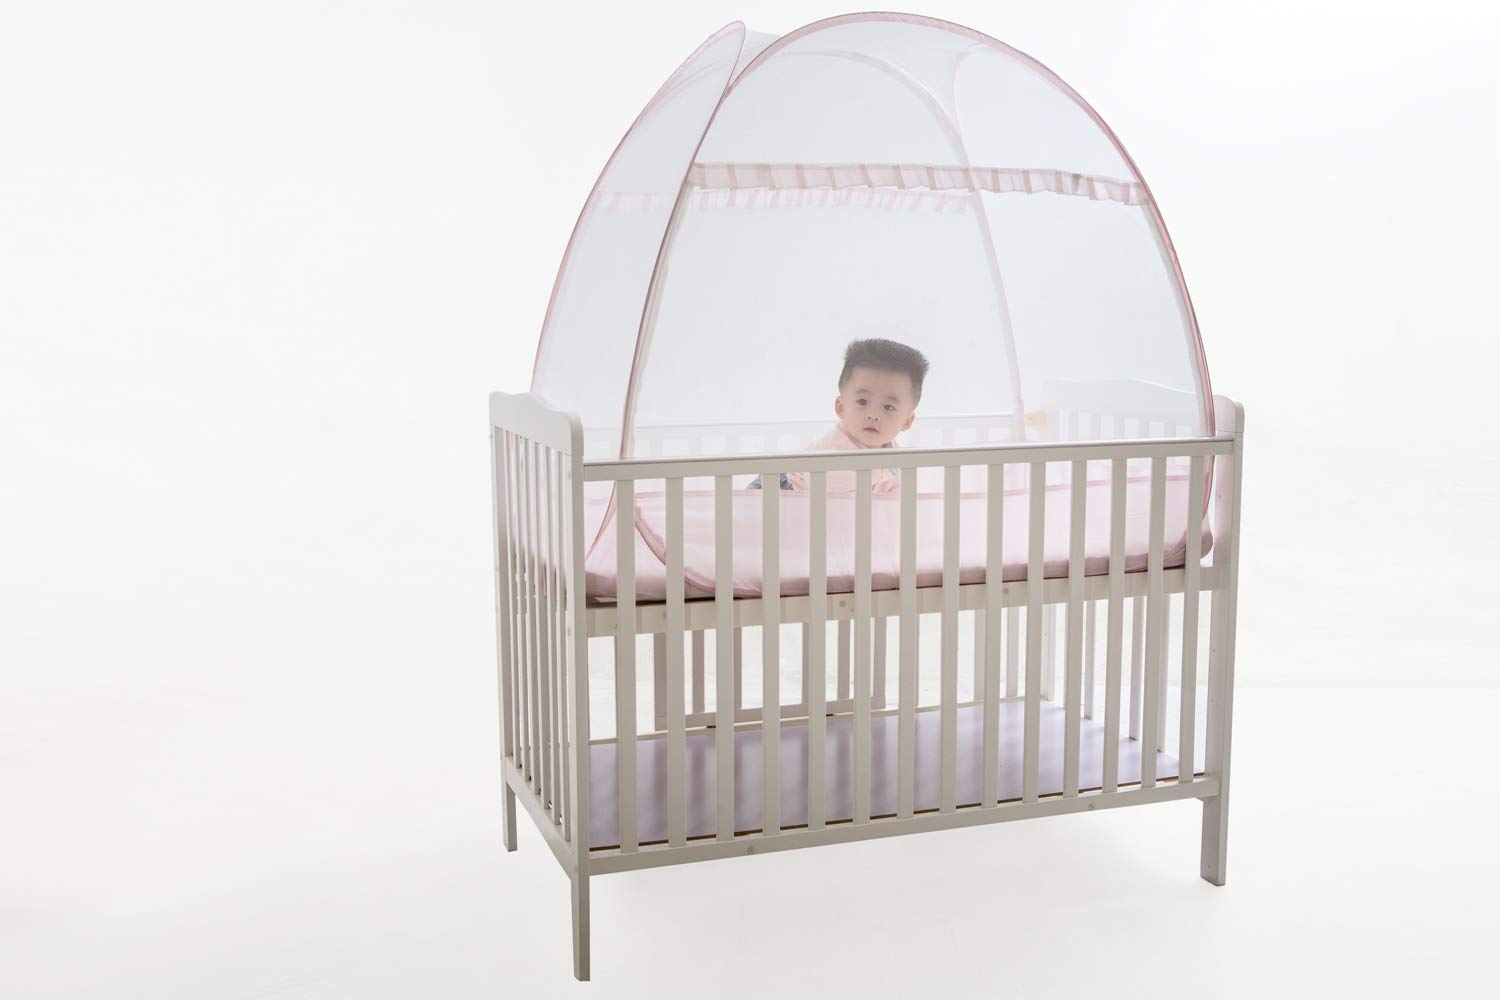 Baby Crib Tent, V-Fyee Baby Bed Pop up Mosquito Net Safety Tent Canopy Cover to Keep Toddler from Climbing Out and Keep Insects Out (Pink, 47''L x 26''W x 39''H)